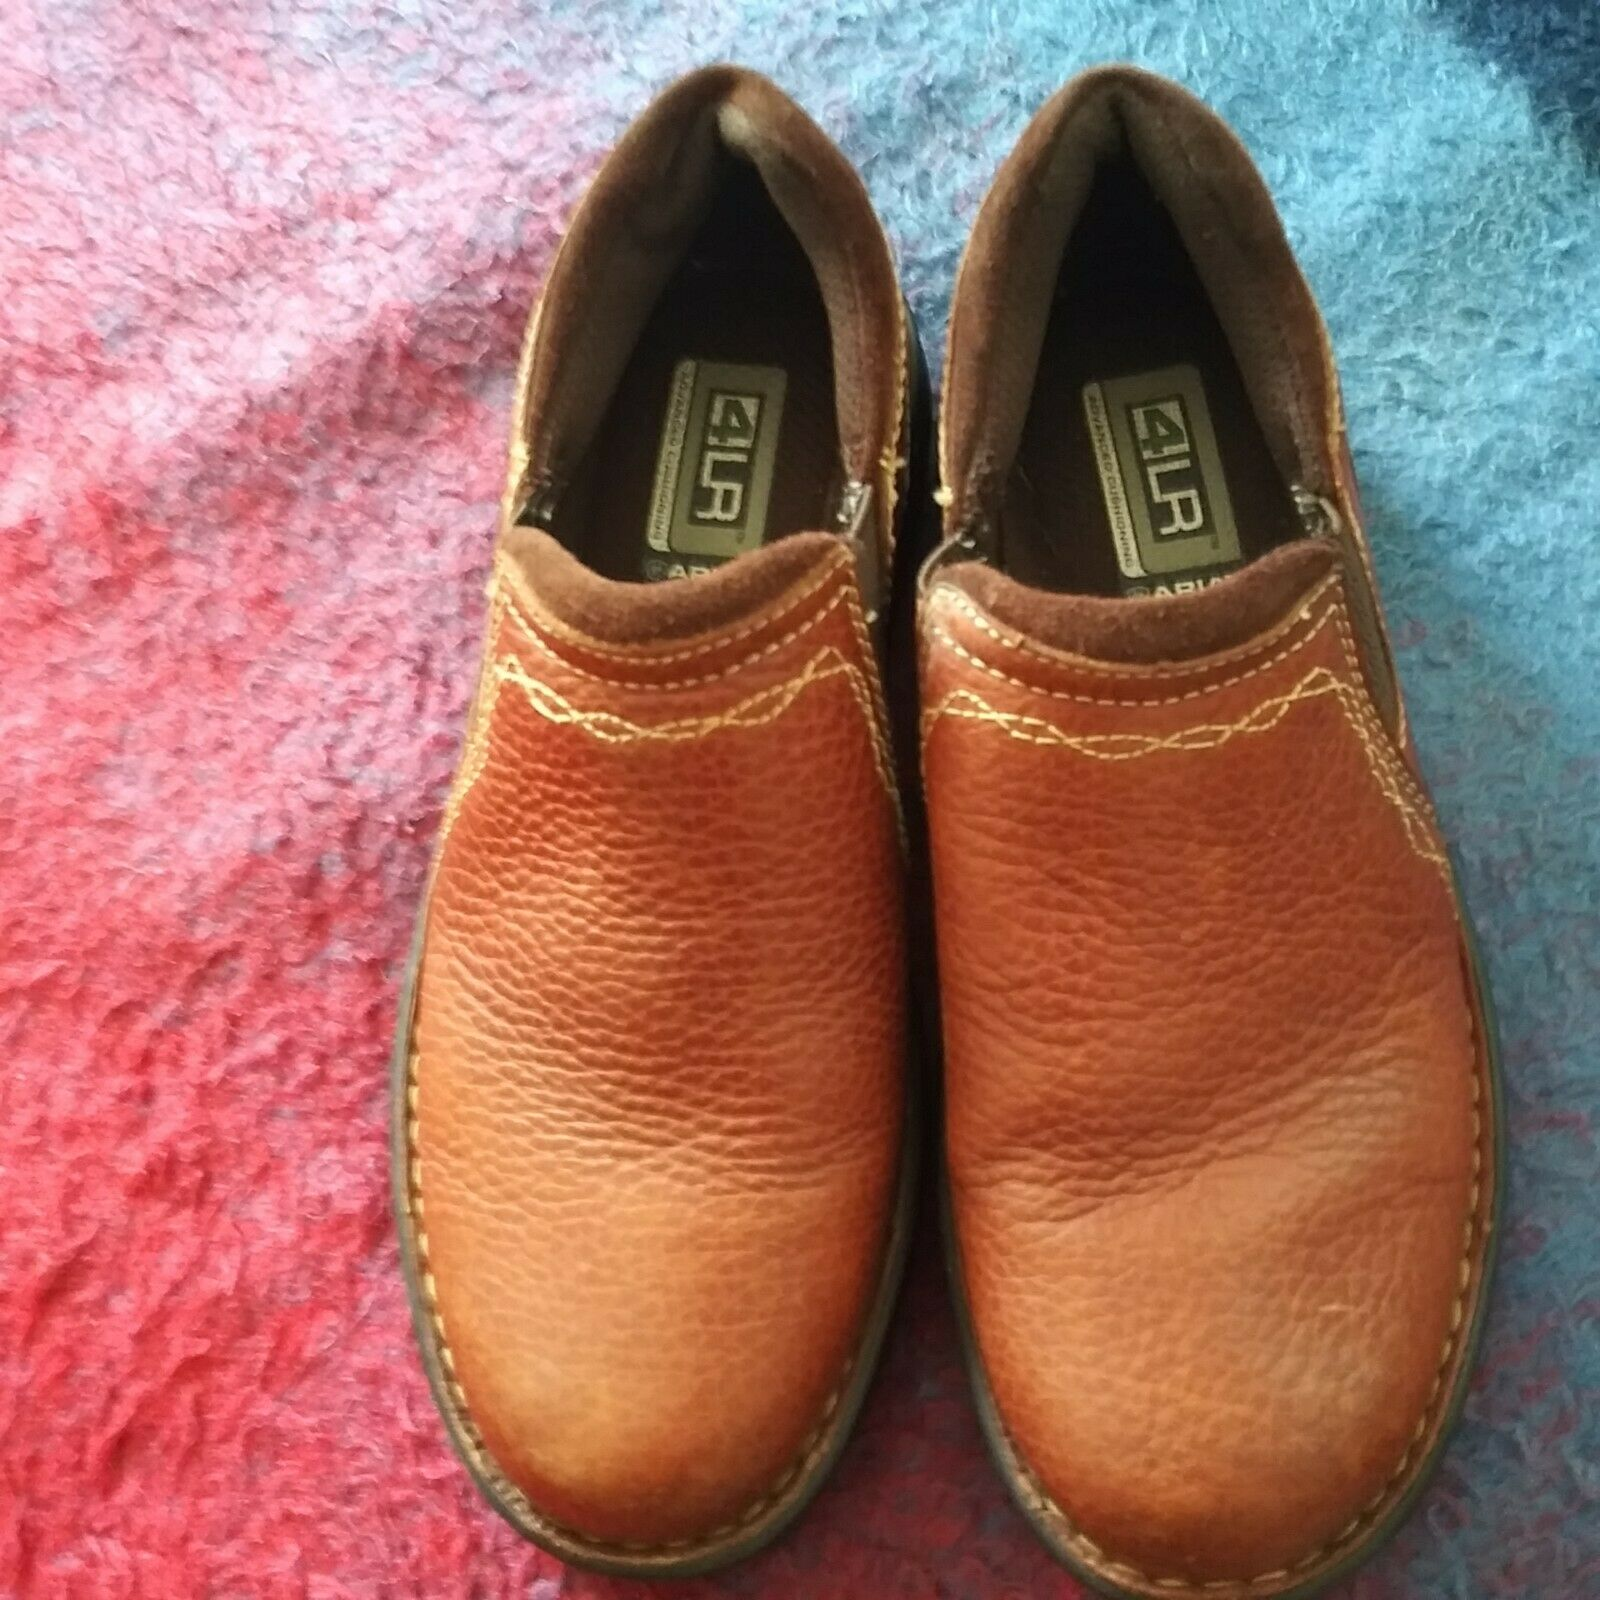 ARIAT LODEN 4LR Pecan Leather Casual Loafers Womens Shoes Size 6 B.